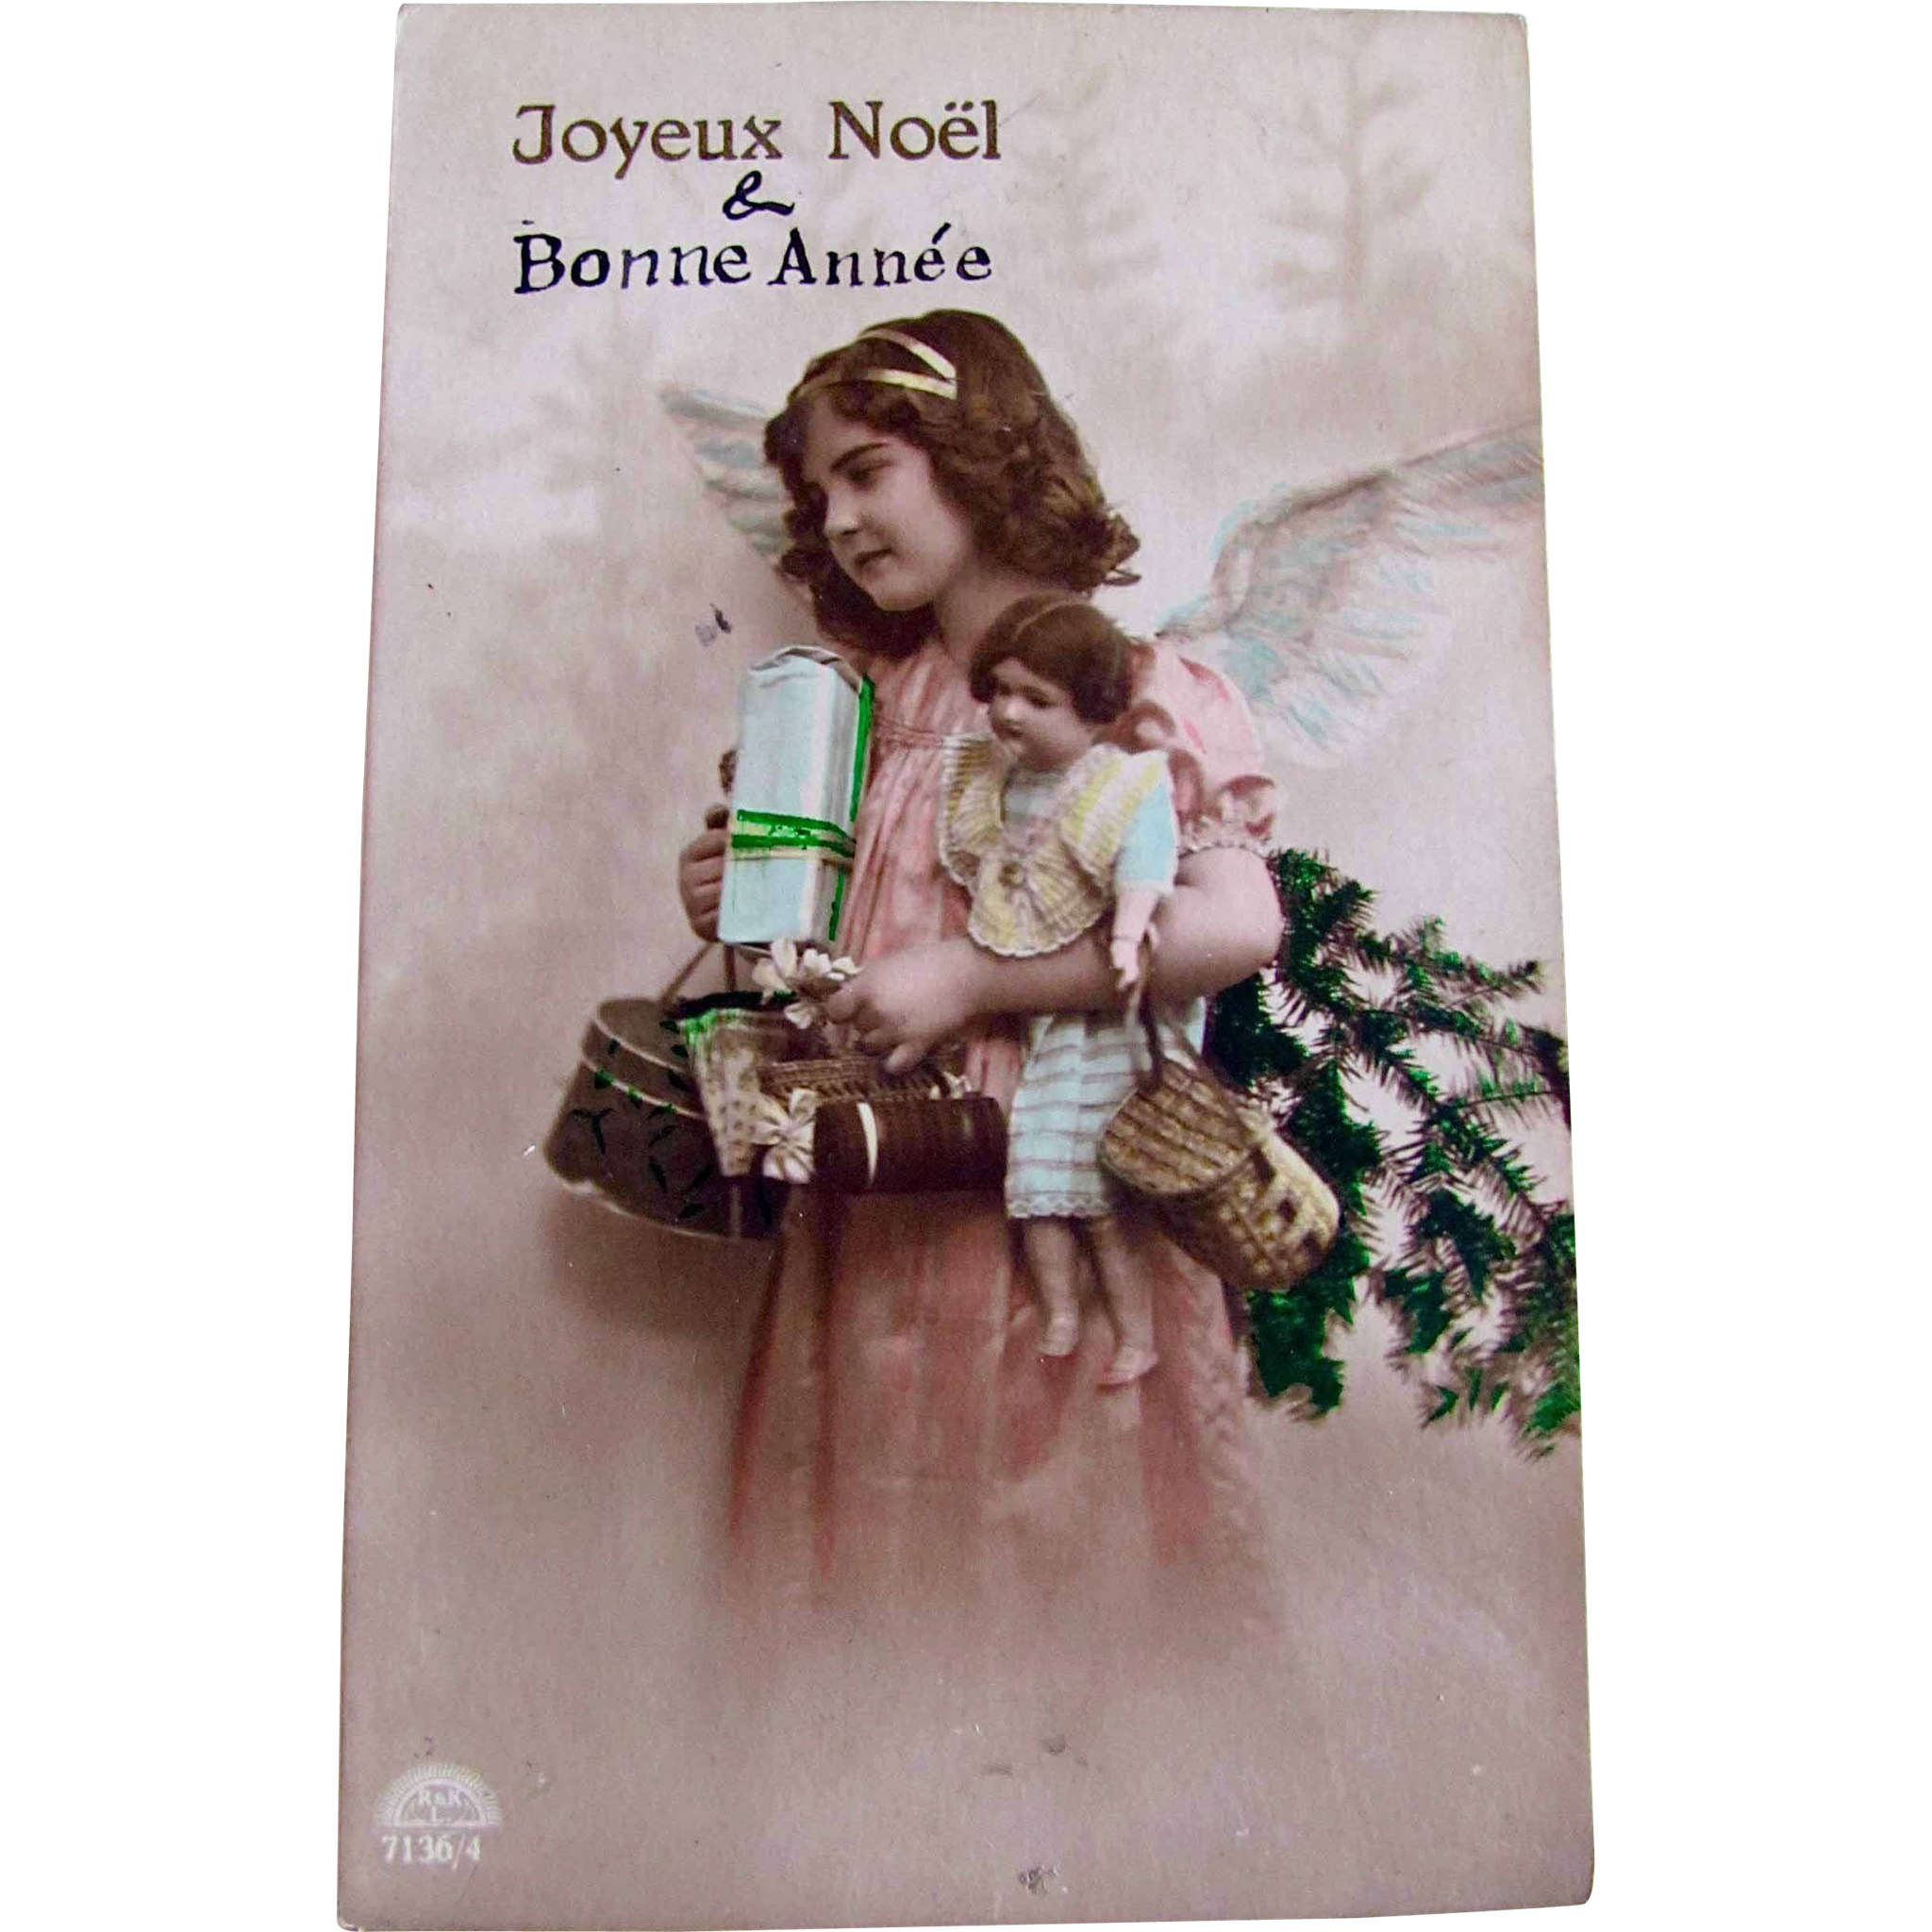 Tinted French RPPC, Little Angel Girl, Doll, Hatbox, Wrapped Gifts, Christmas Tree, Real Photo Postcard, Joyeux Noel & Bonne Annee, Divided Back, Stamp and Postmark